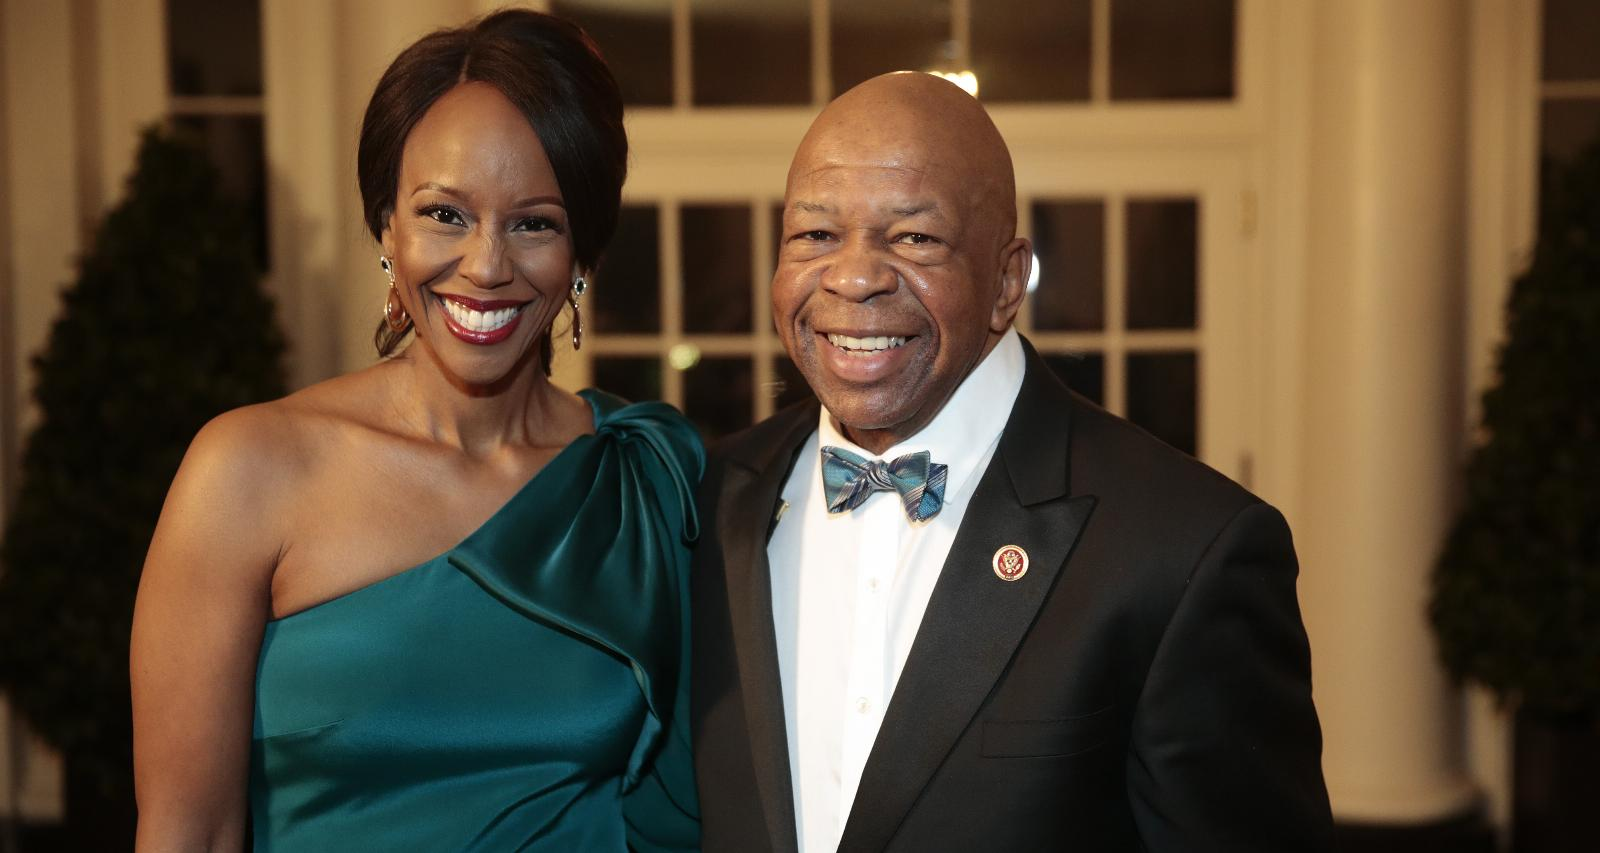 Elijah Cummings with wife Maya Rockeymoore